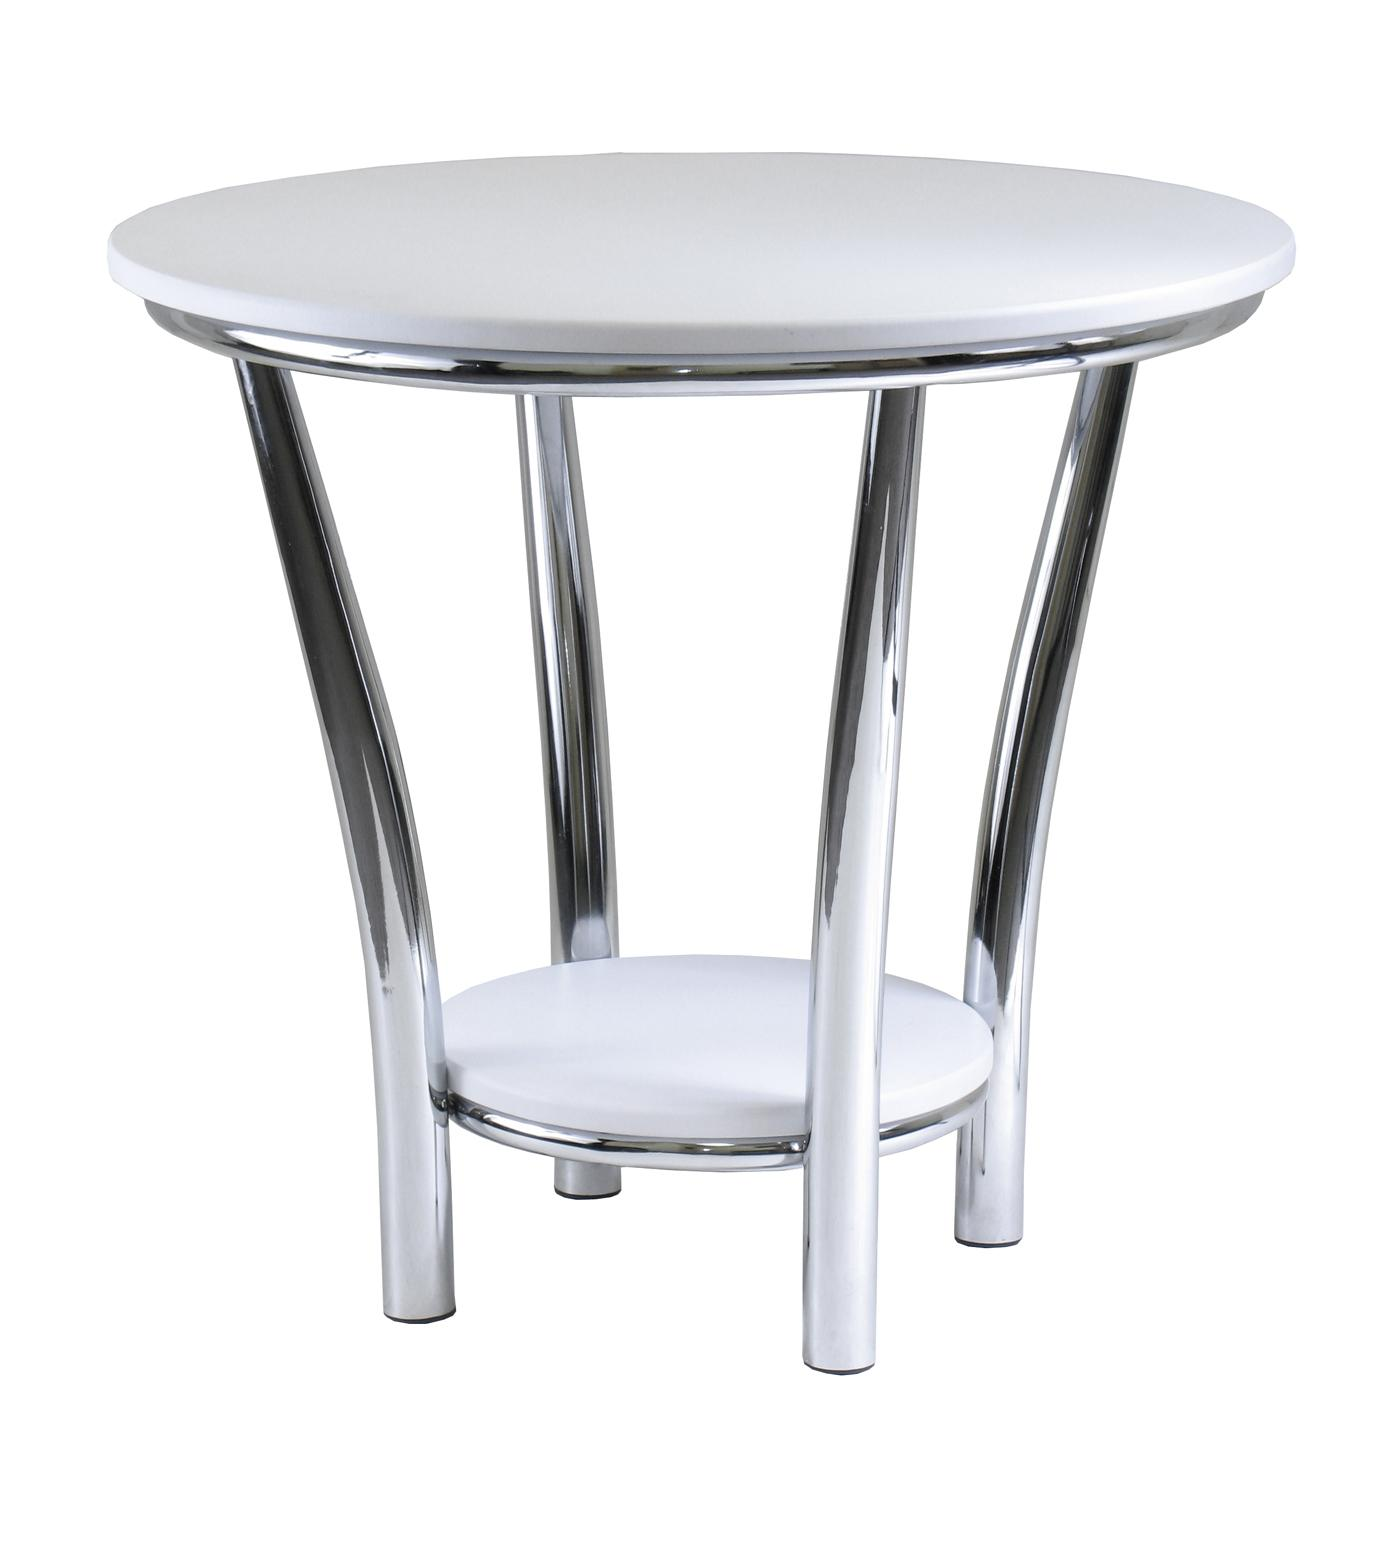 round end table white top metal leg accent west elm floor pillow square drop leaf black bar height small nightstand grooming sofa tables with drawers long cabinet counter lamp